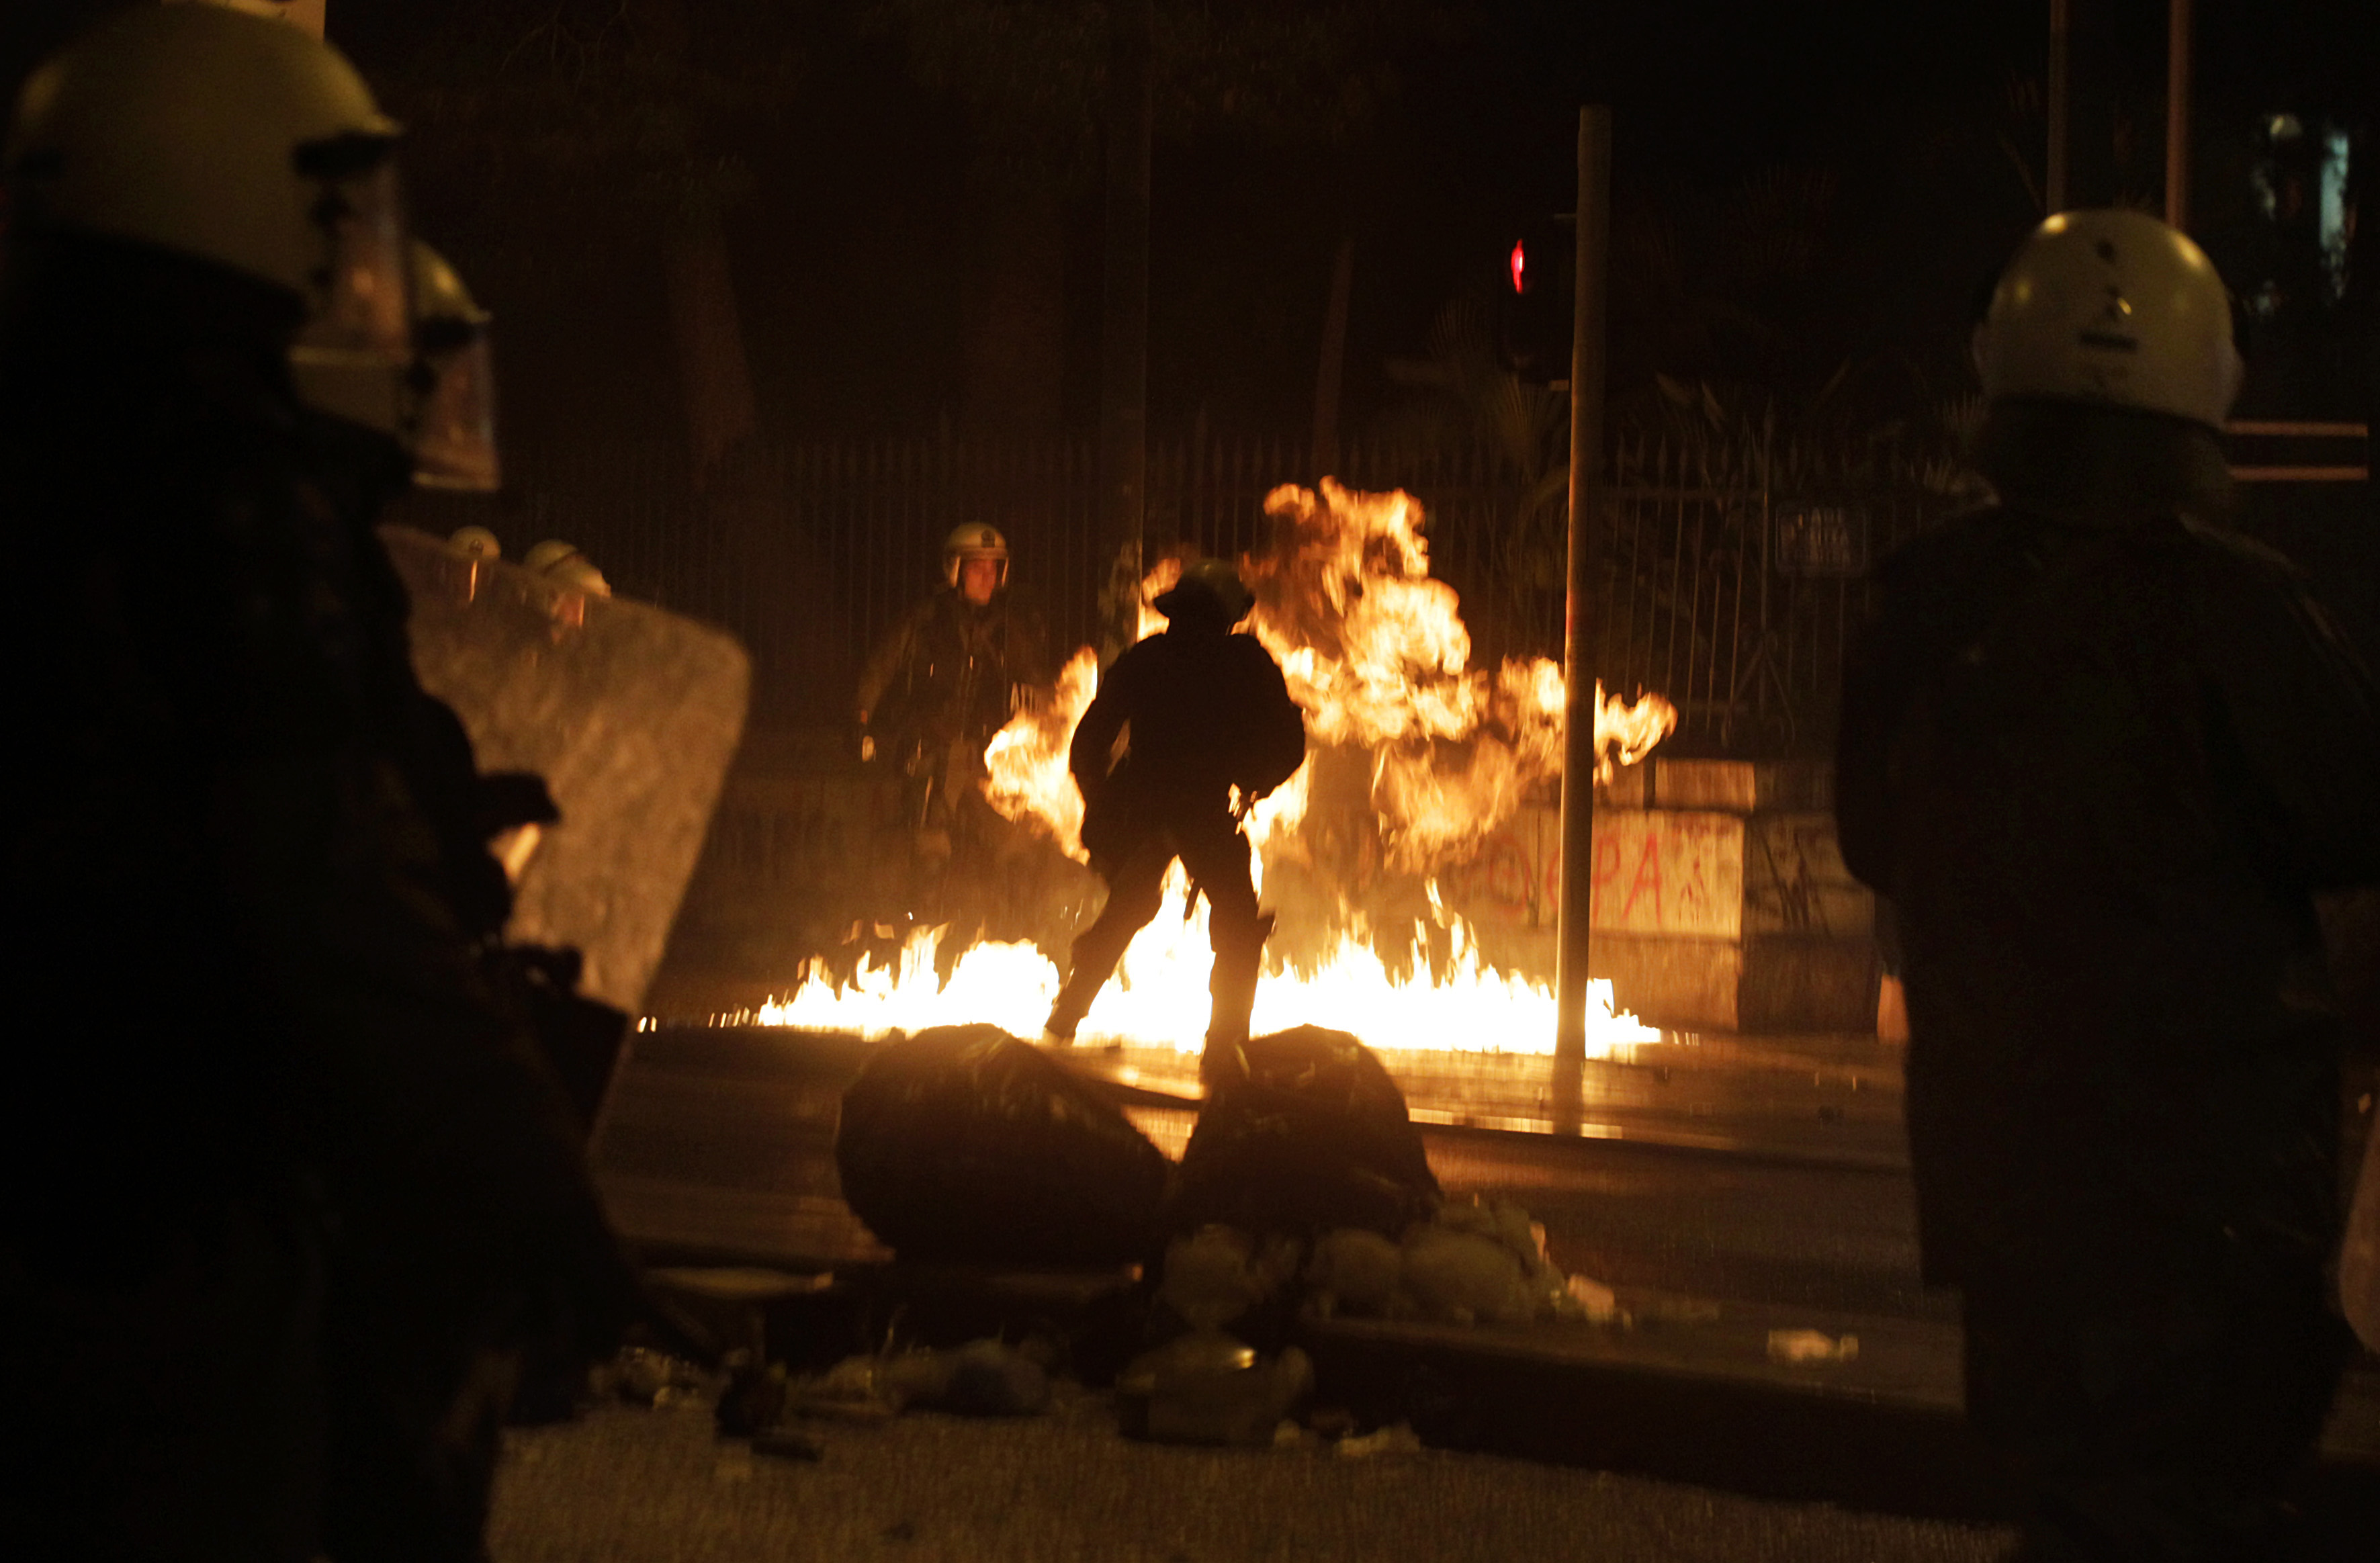 Riot policemen try to avoid a molotov cocktail during clashes after the end of an antigovernment protest called by leftist groups in Athens on Feb. 26, 2015